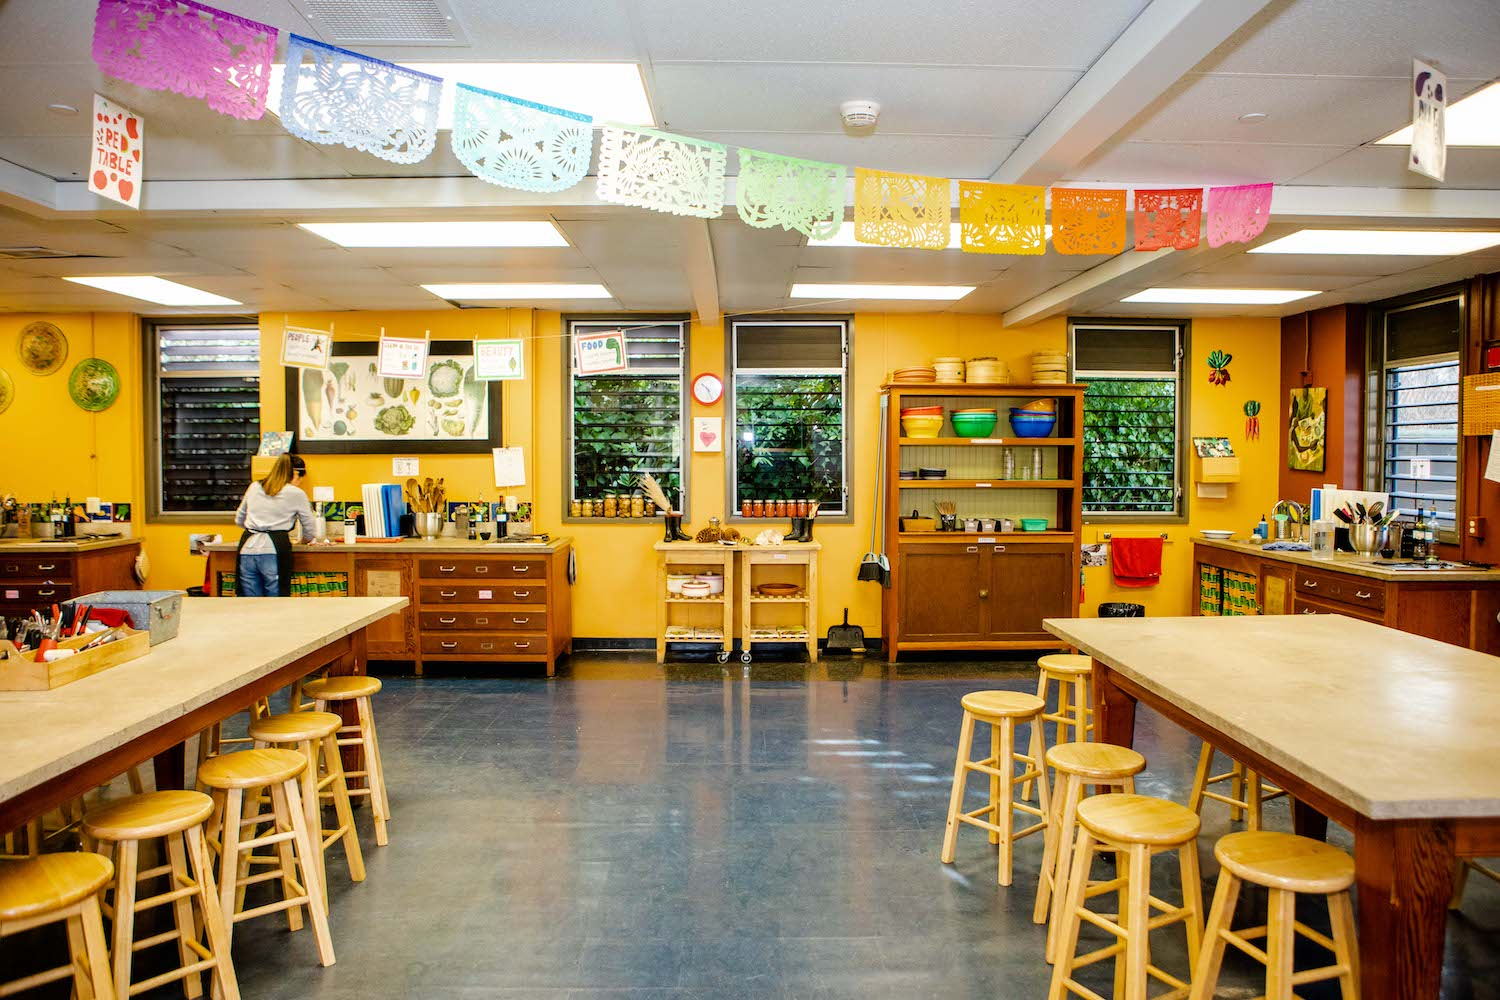 The ESY kitchen classroom at King Middle School.